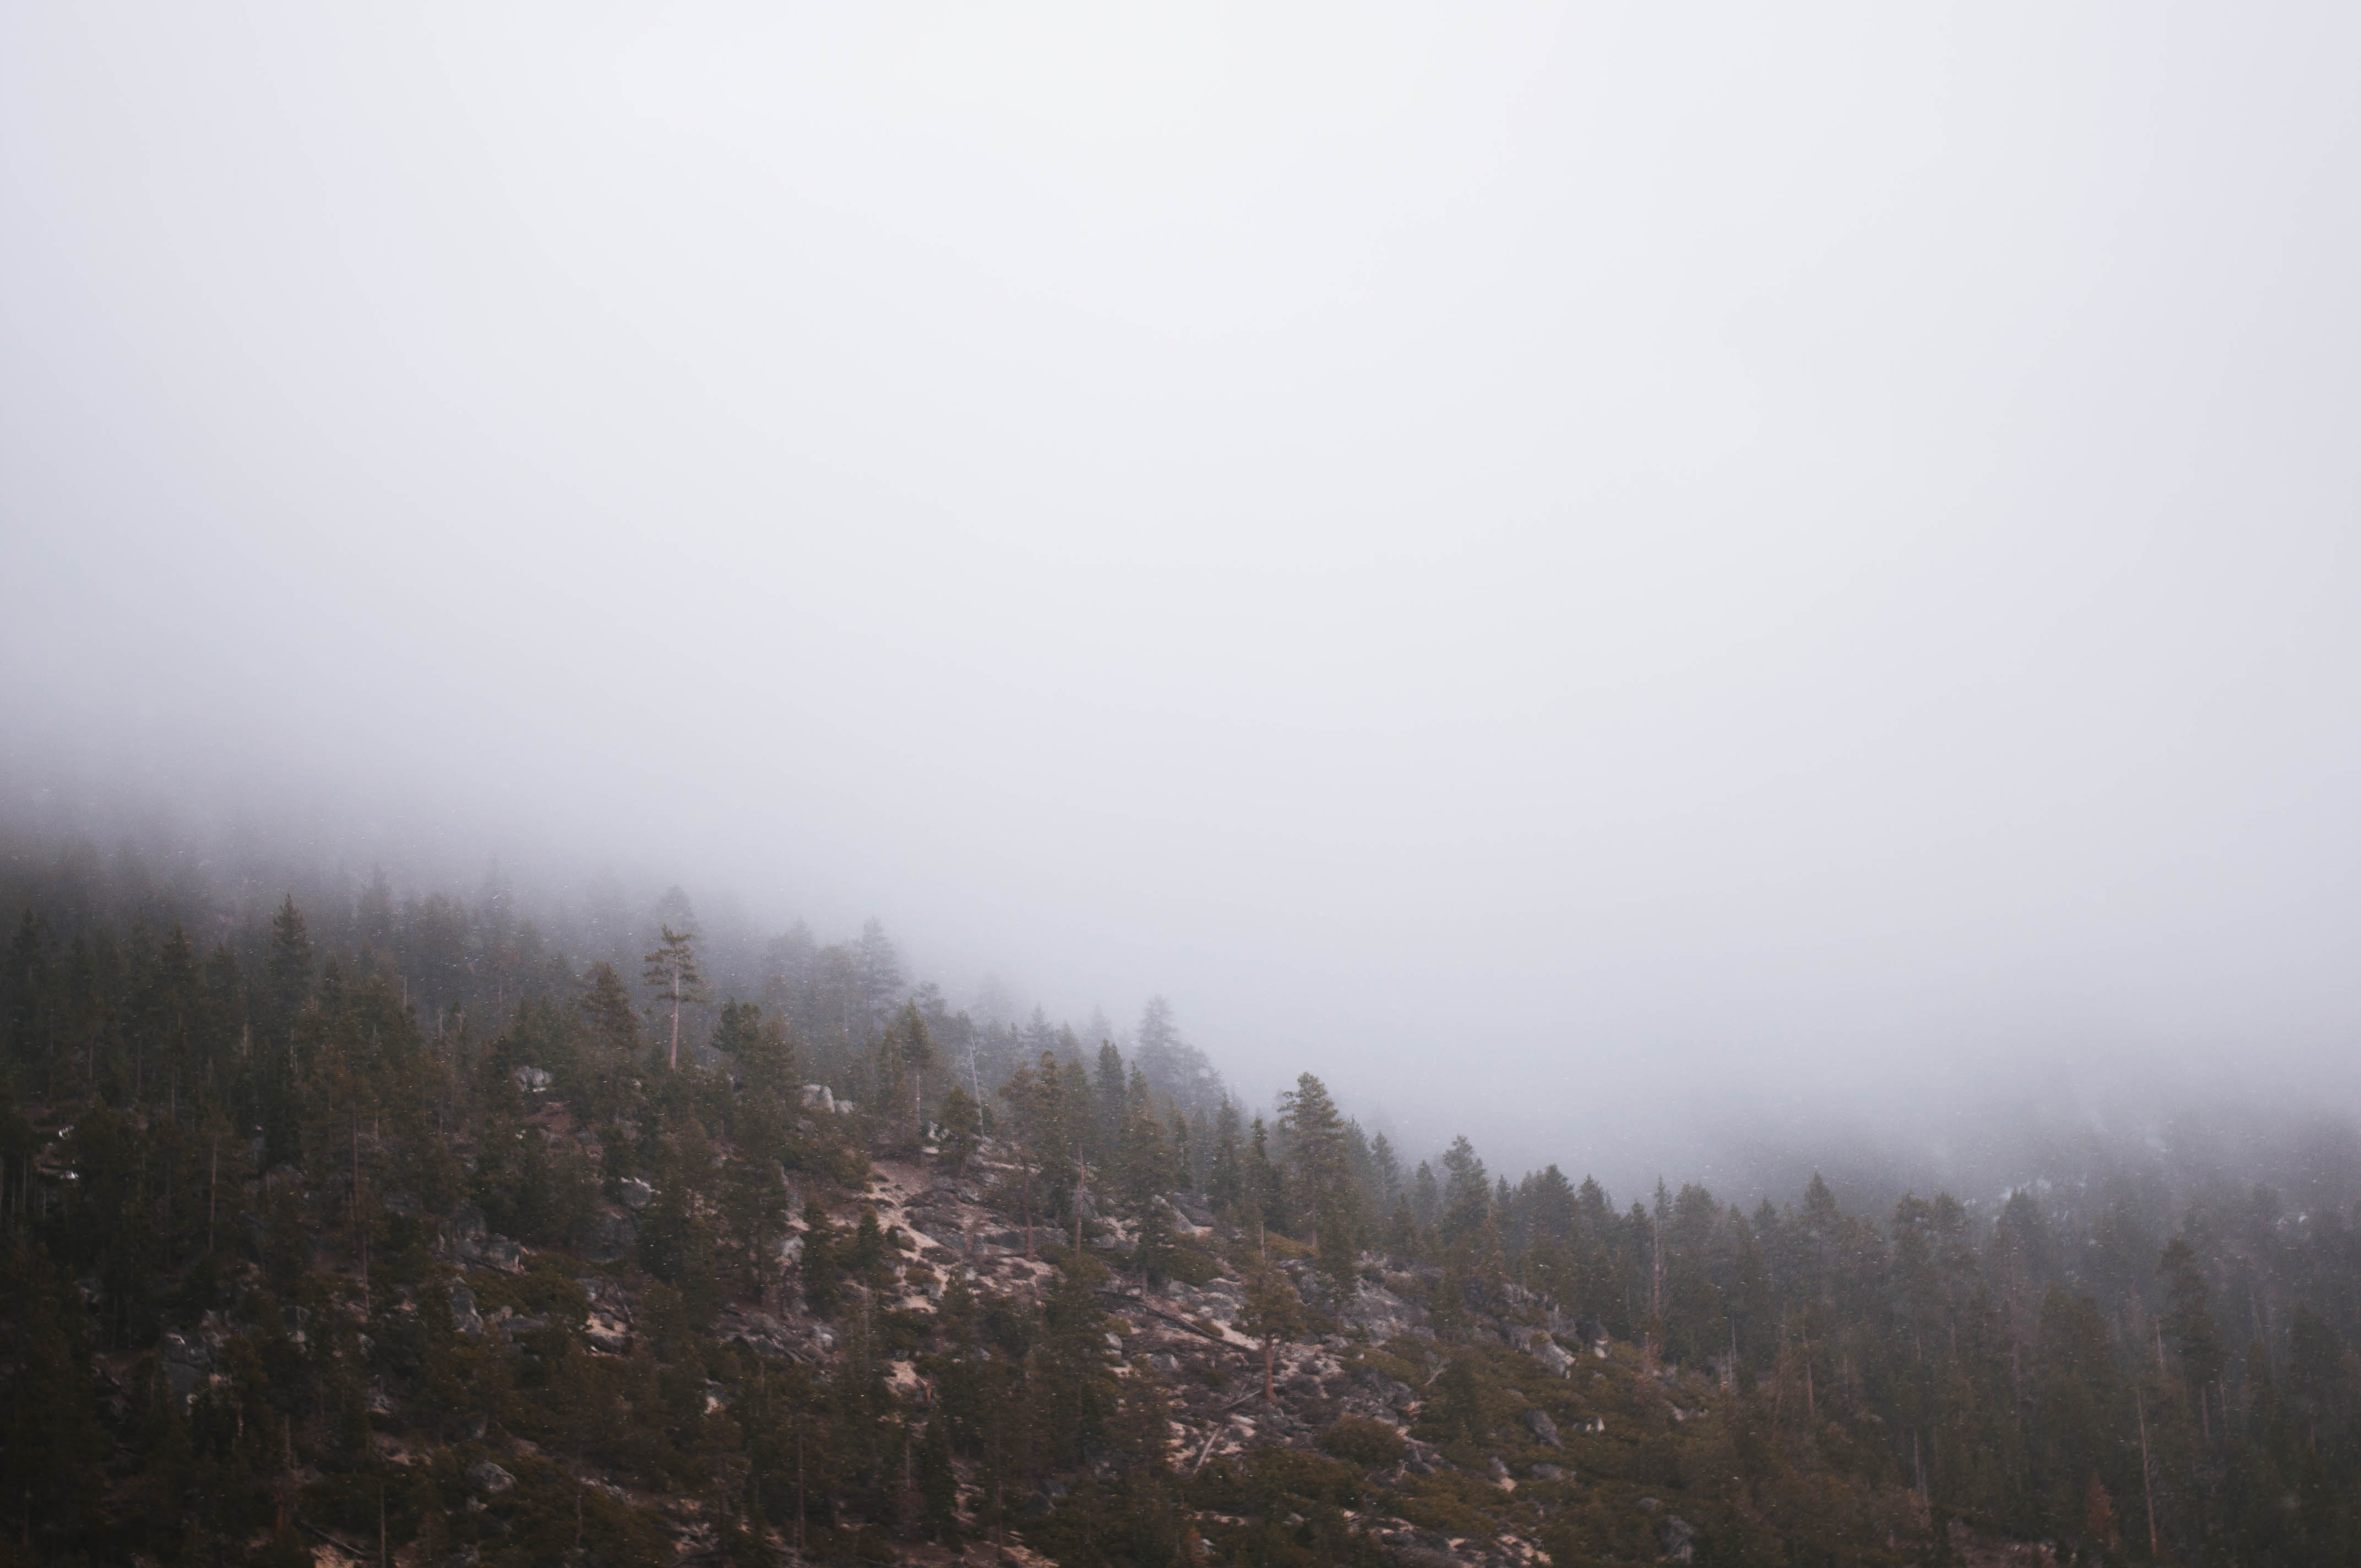 Gray mist over a windswept forest near Lake Tahoe